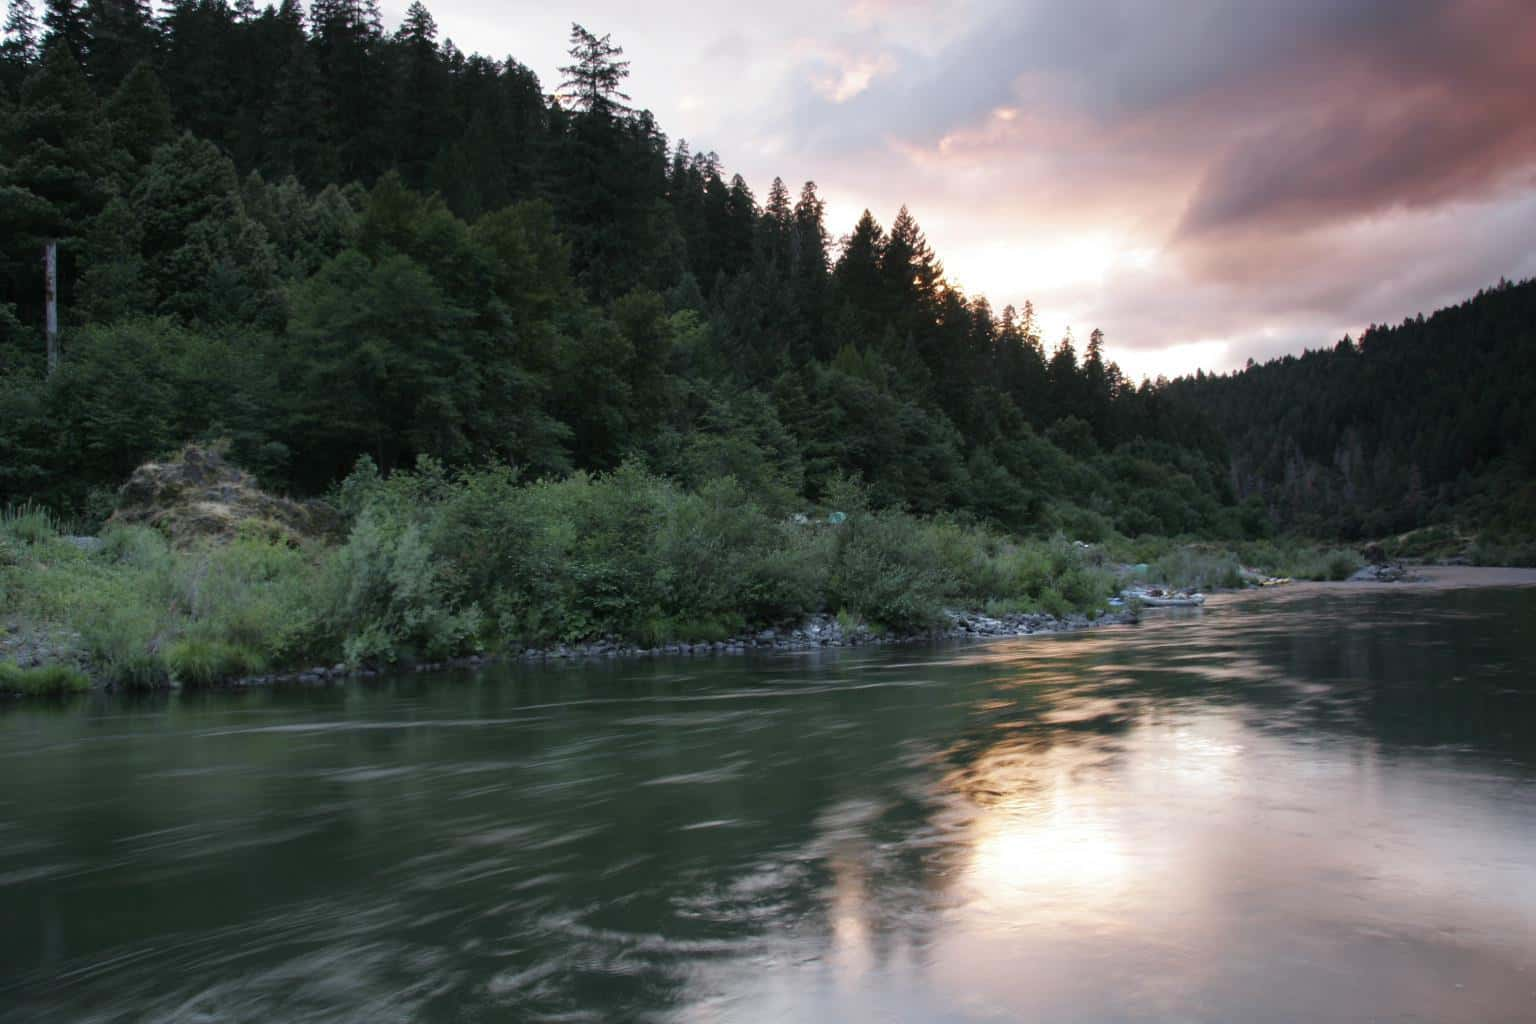 Fishing restrictions lifted on rogue river for Rogue river oregon fishing